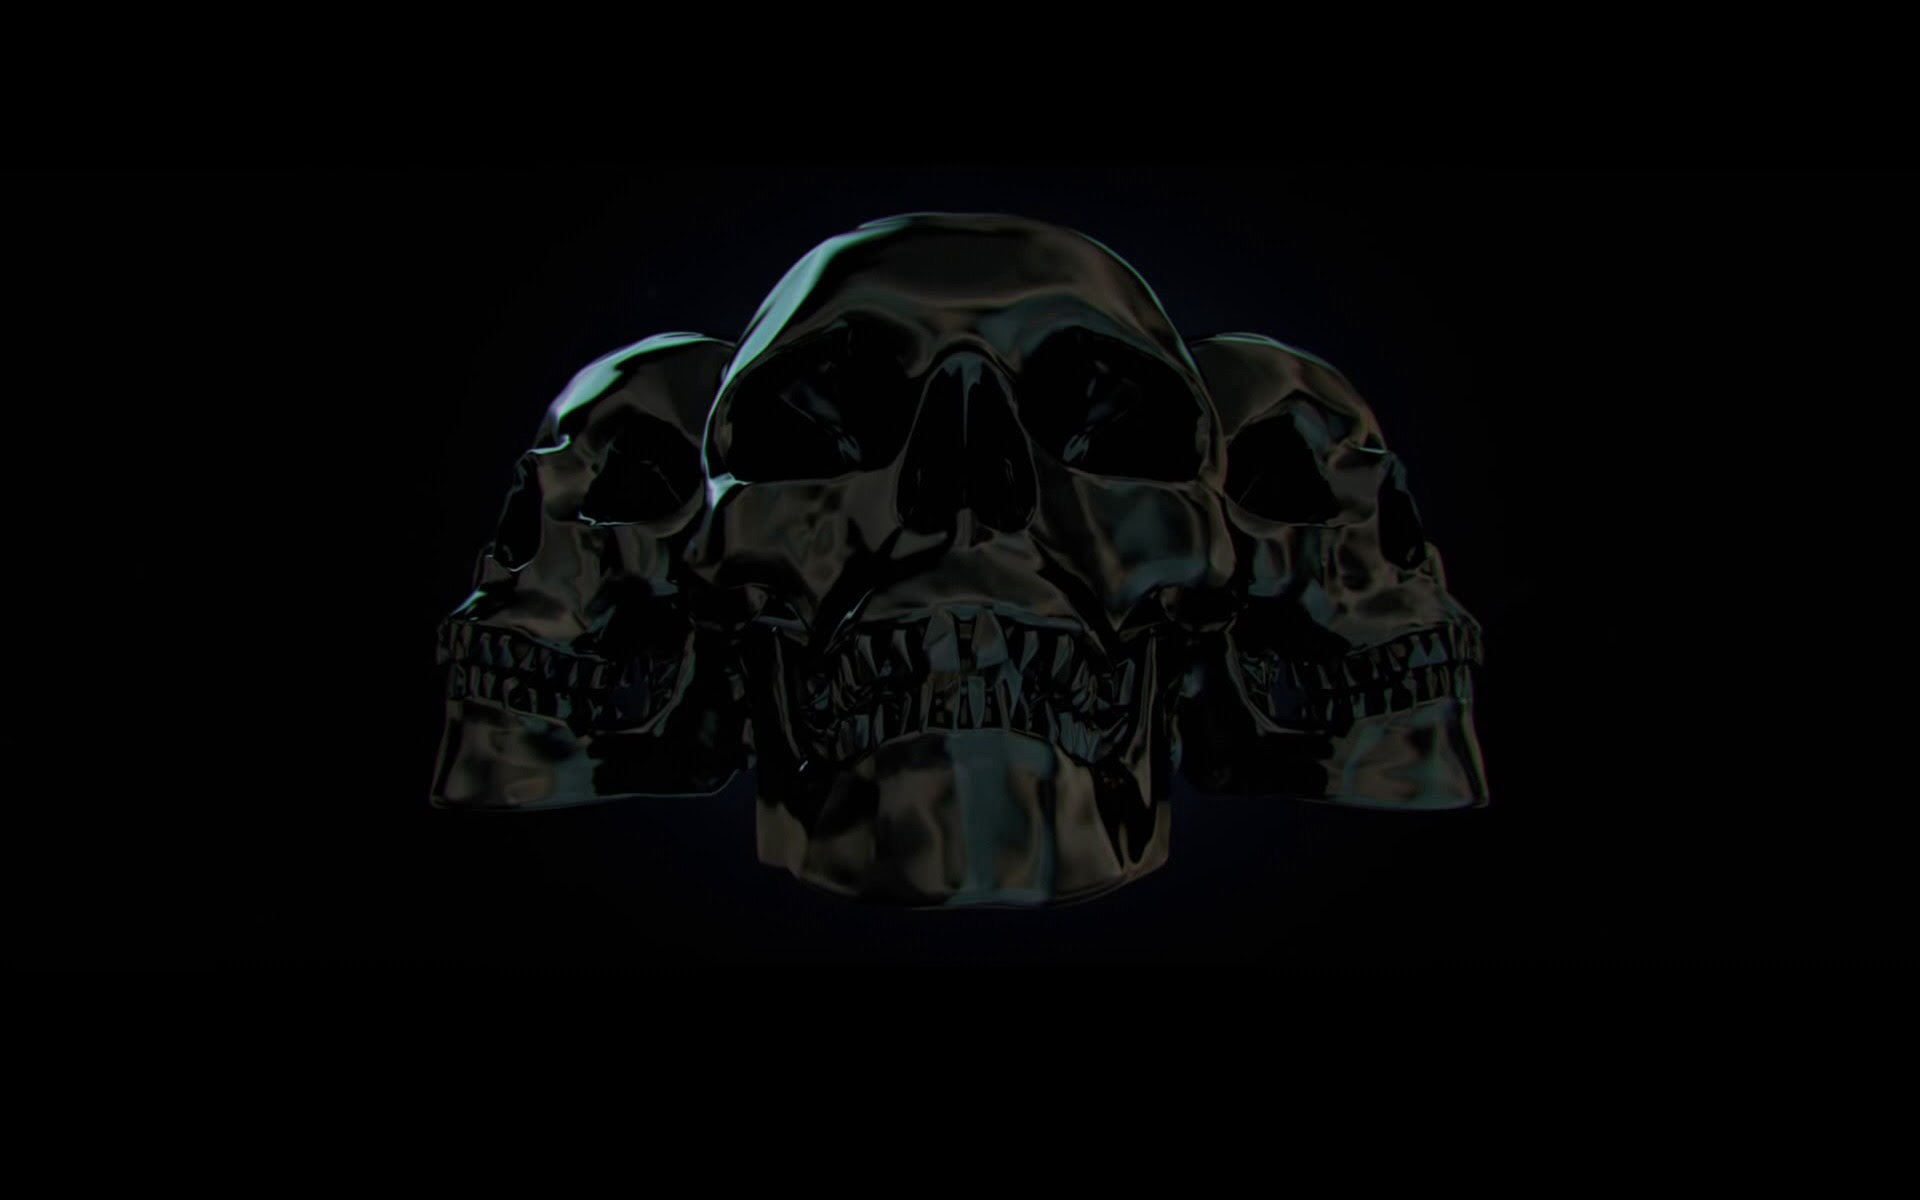 The Expendables 3 2014 Movie Skull Logo 56 Wallpaper HD 1920x1200